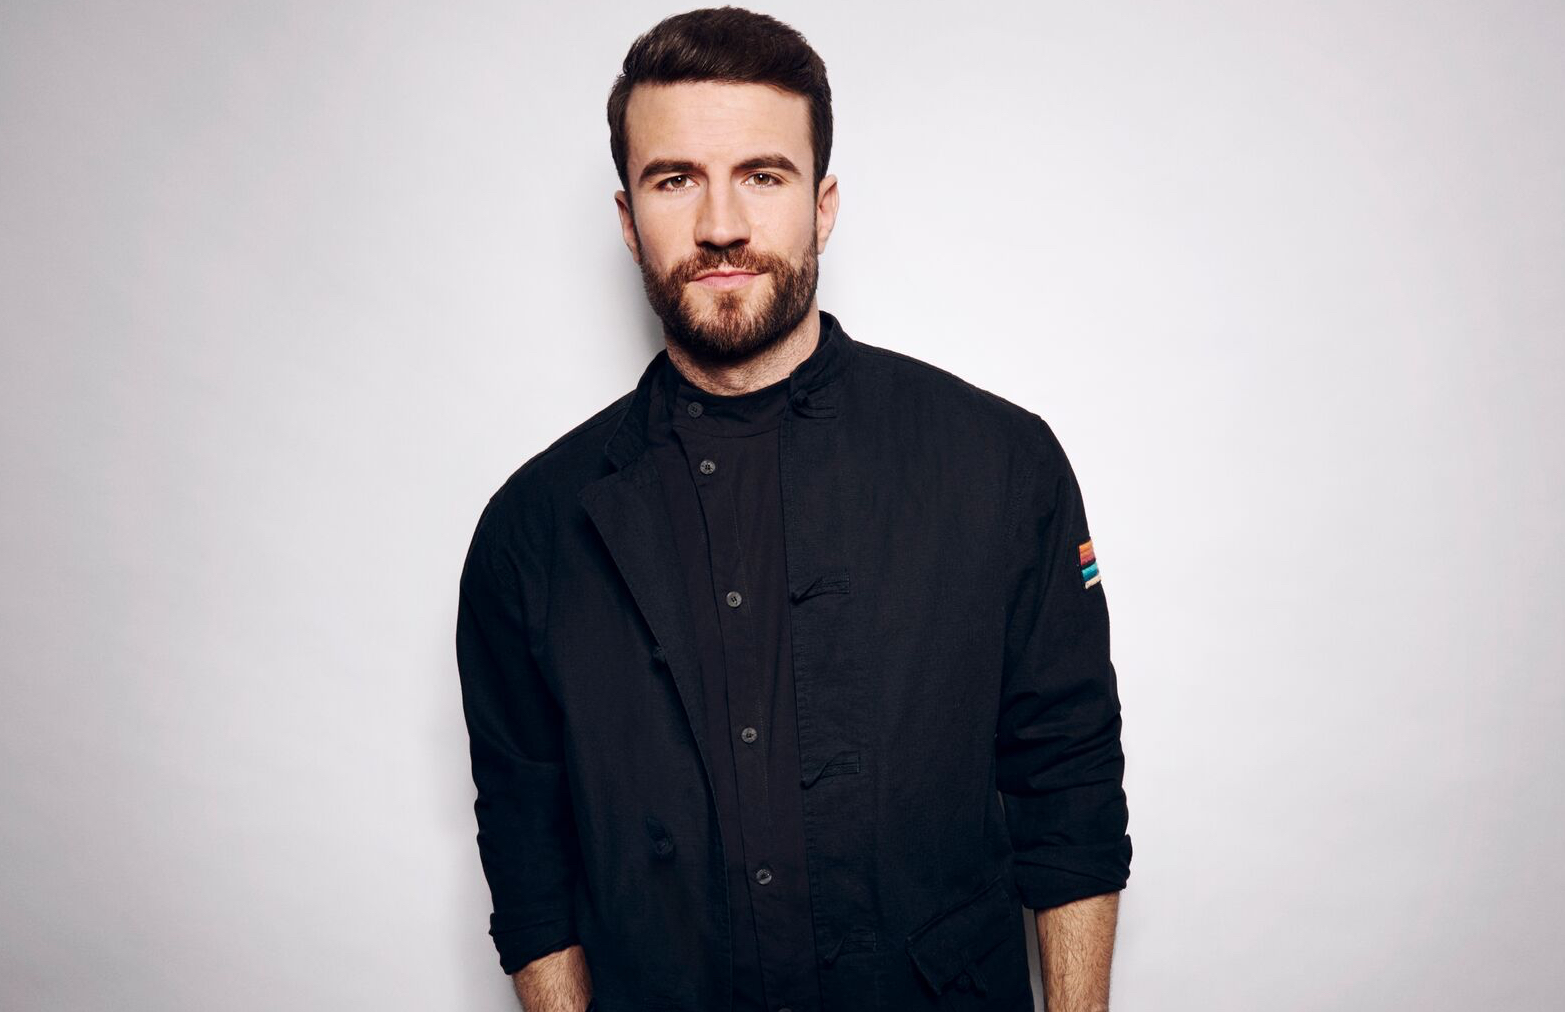 Sam Hunt Claims That 'Downtown's Dead' Without His Love By His Side